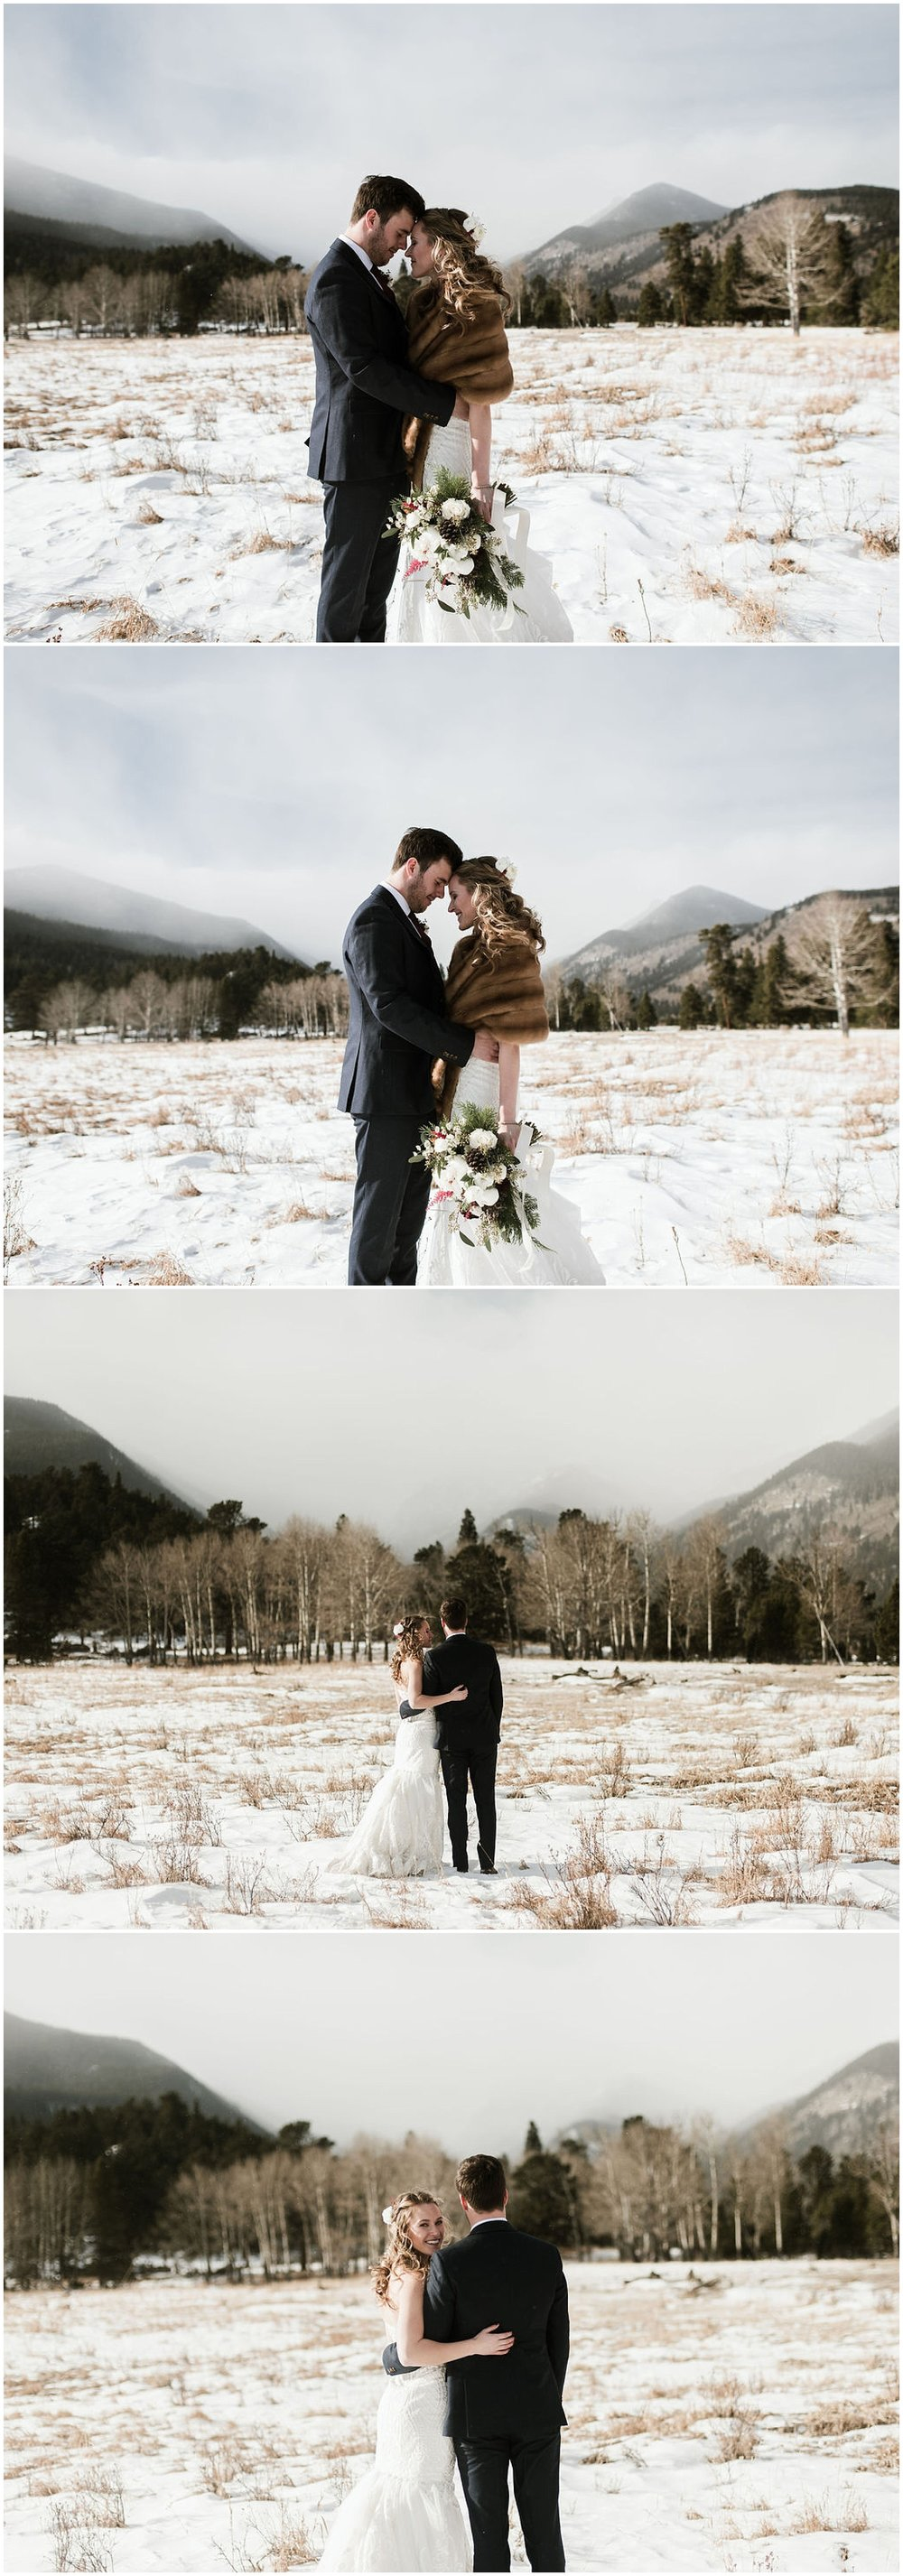 Katesalleyphotography-129_Haley and Dan get married in Estes Park.jpg